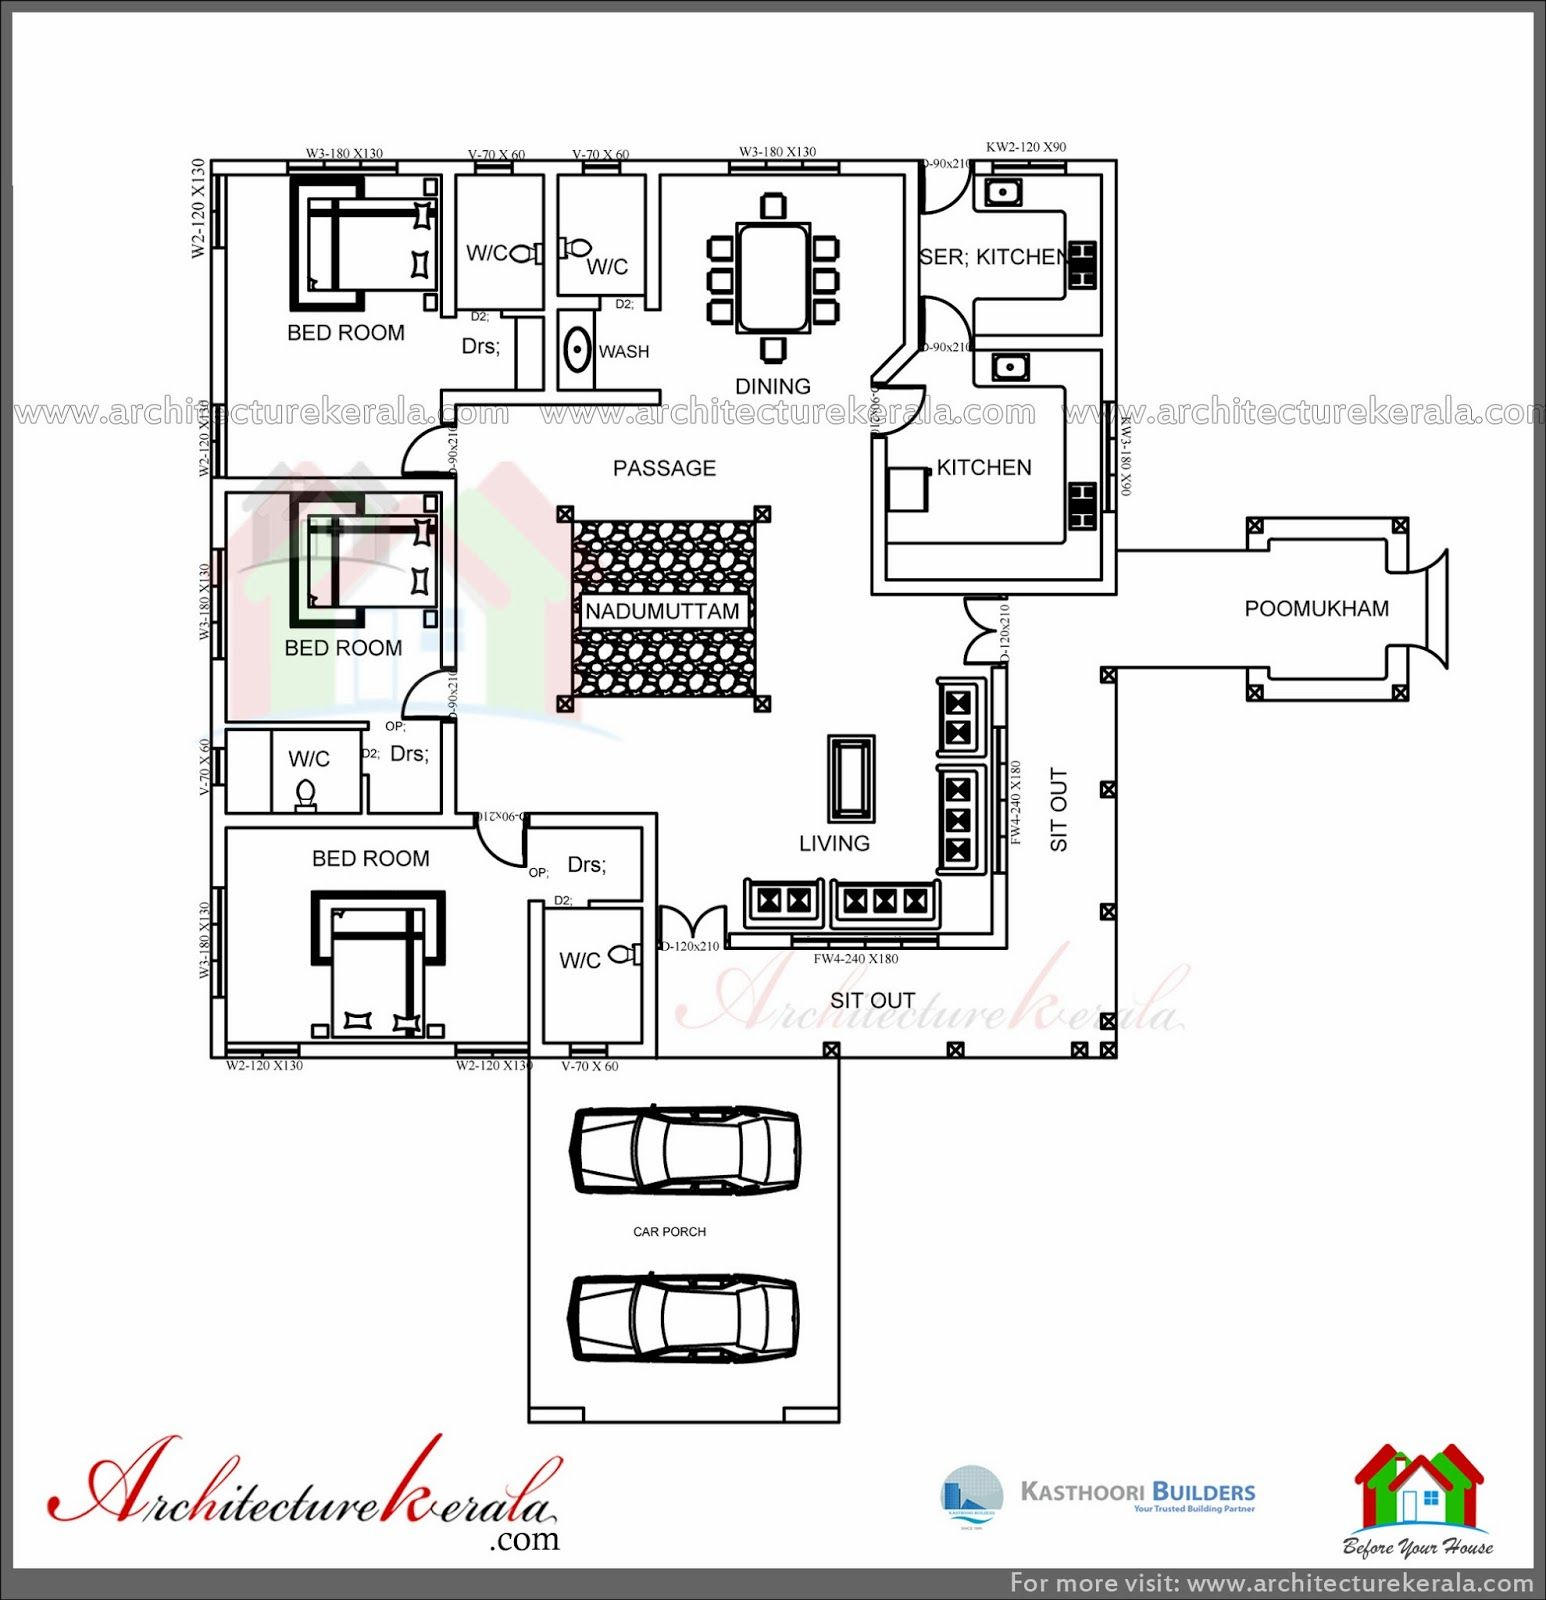 Architecture kerala traditional house plan with for Classic house plans